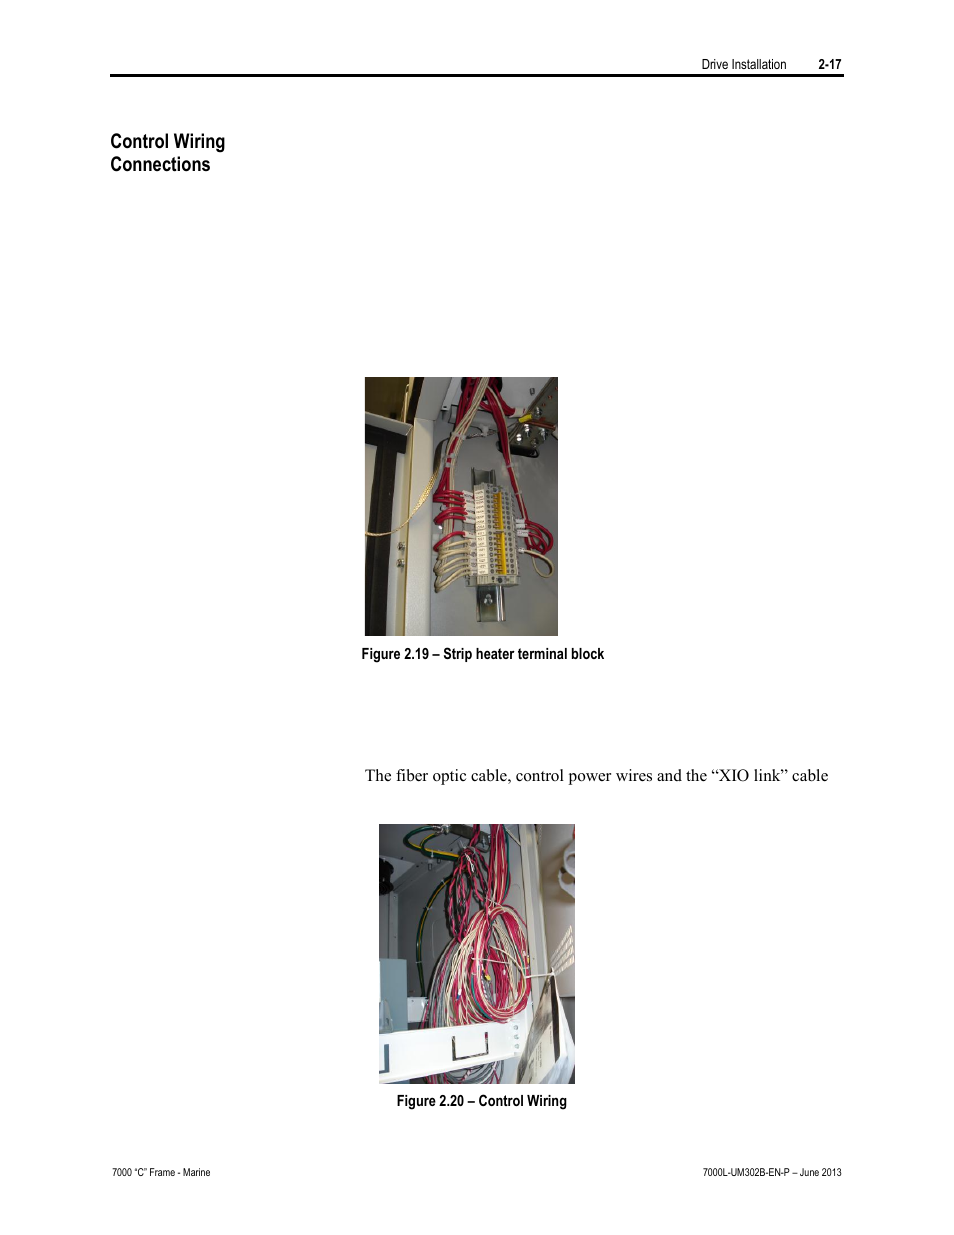 Control Wiring Connections Rockwell Automation 7000l Powerflex Fiber Optic Wire Diagram 7000 Medium Voltage Ac Drive C Frame Marine User Manual Page 47 350